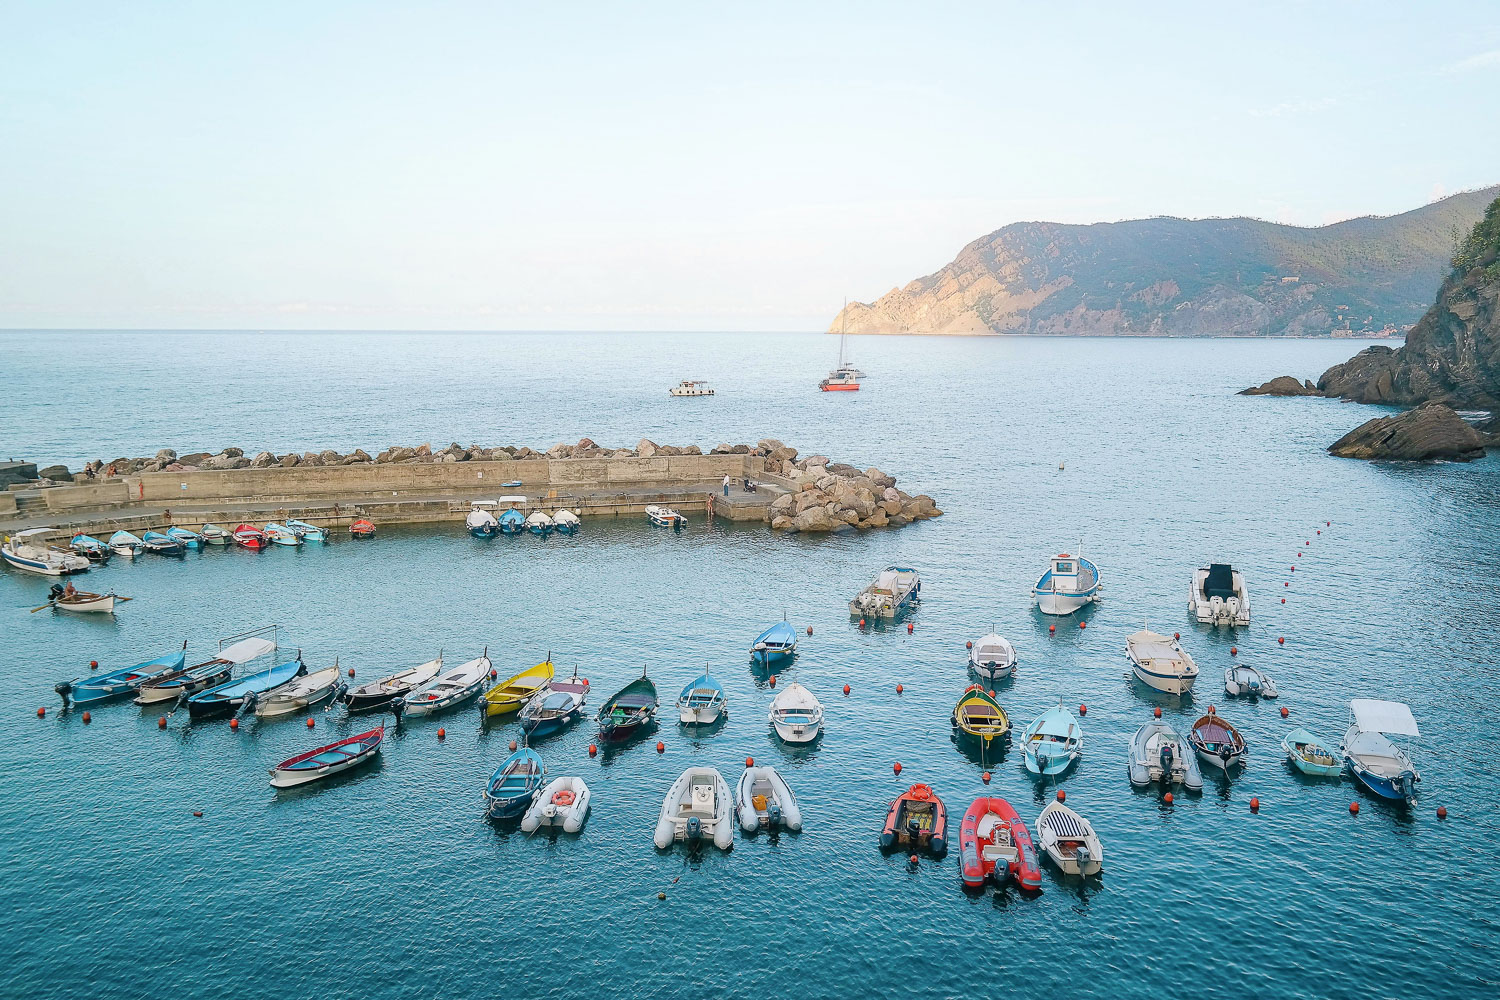 Exactly how to spend 3 days in Cinque Terre